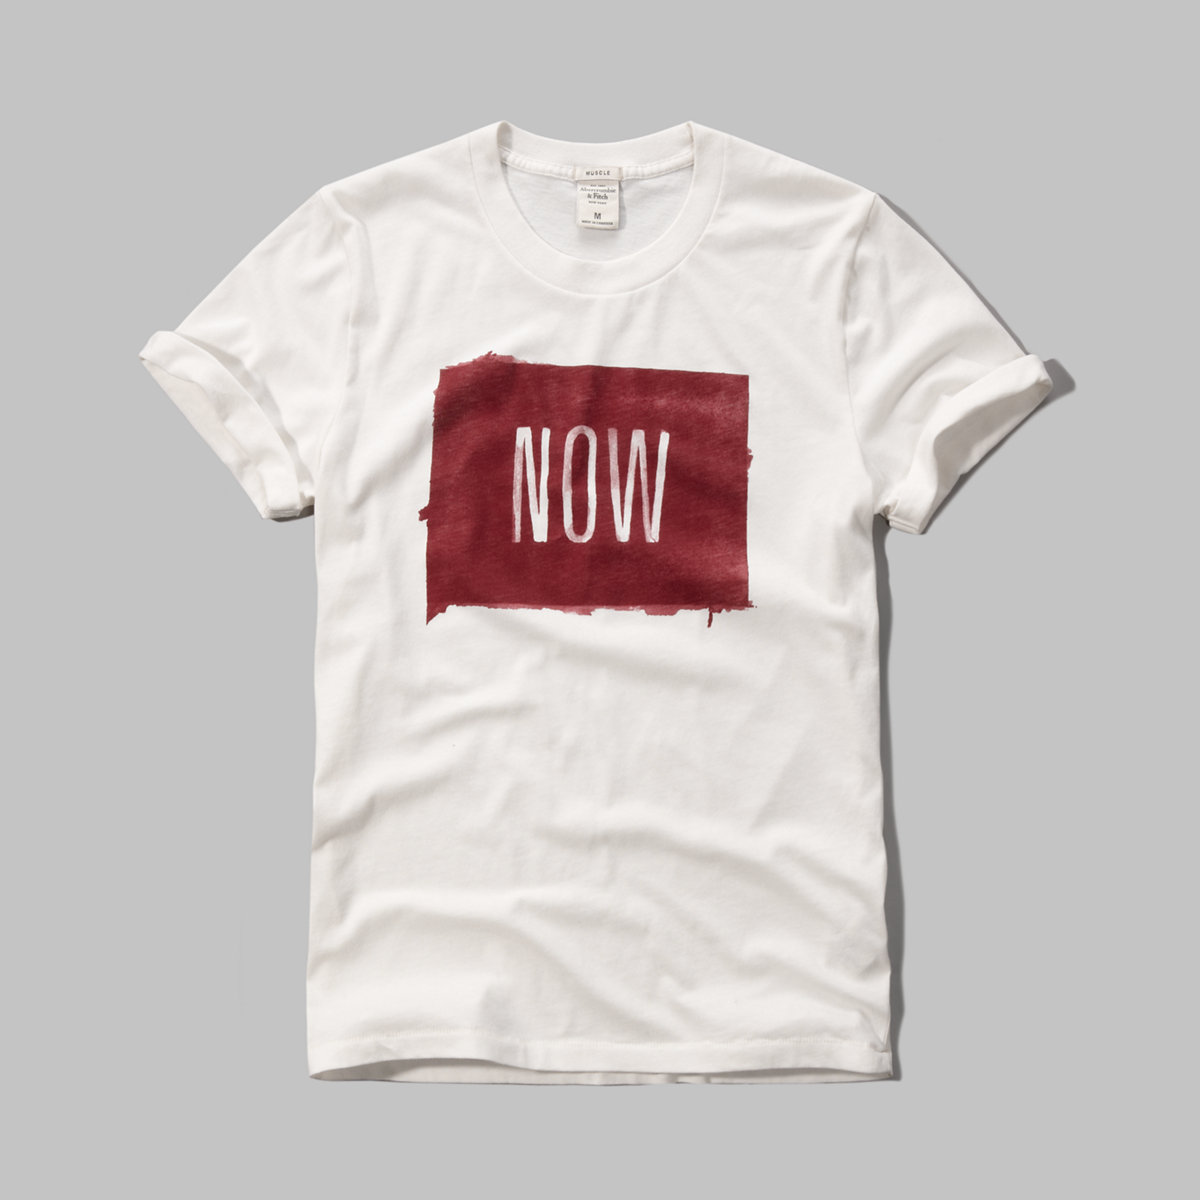 Now Graphic Tee